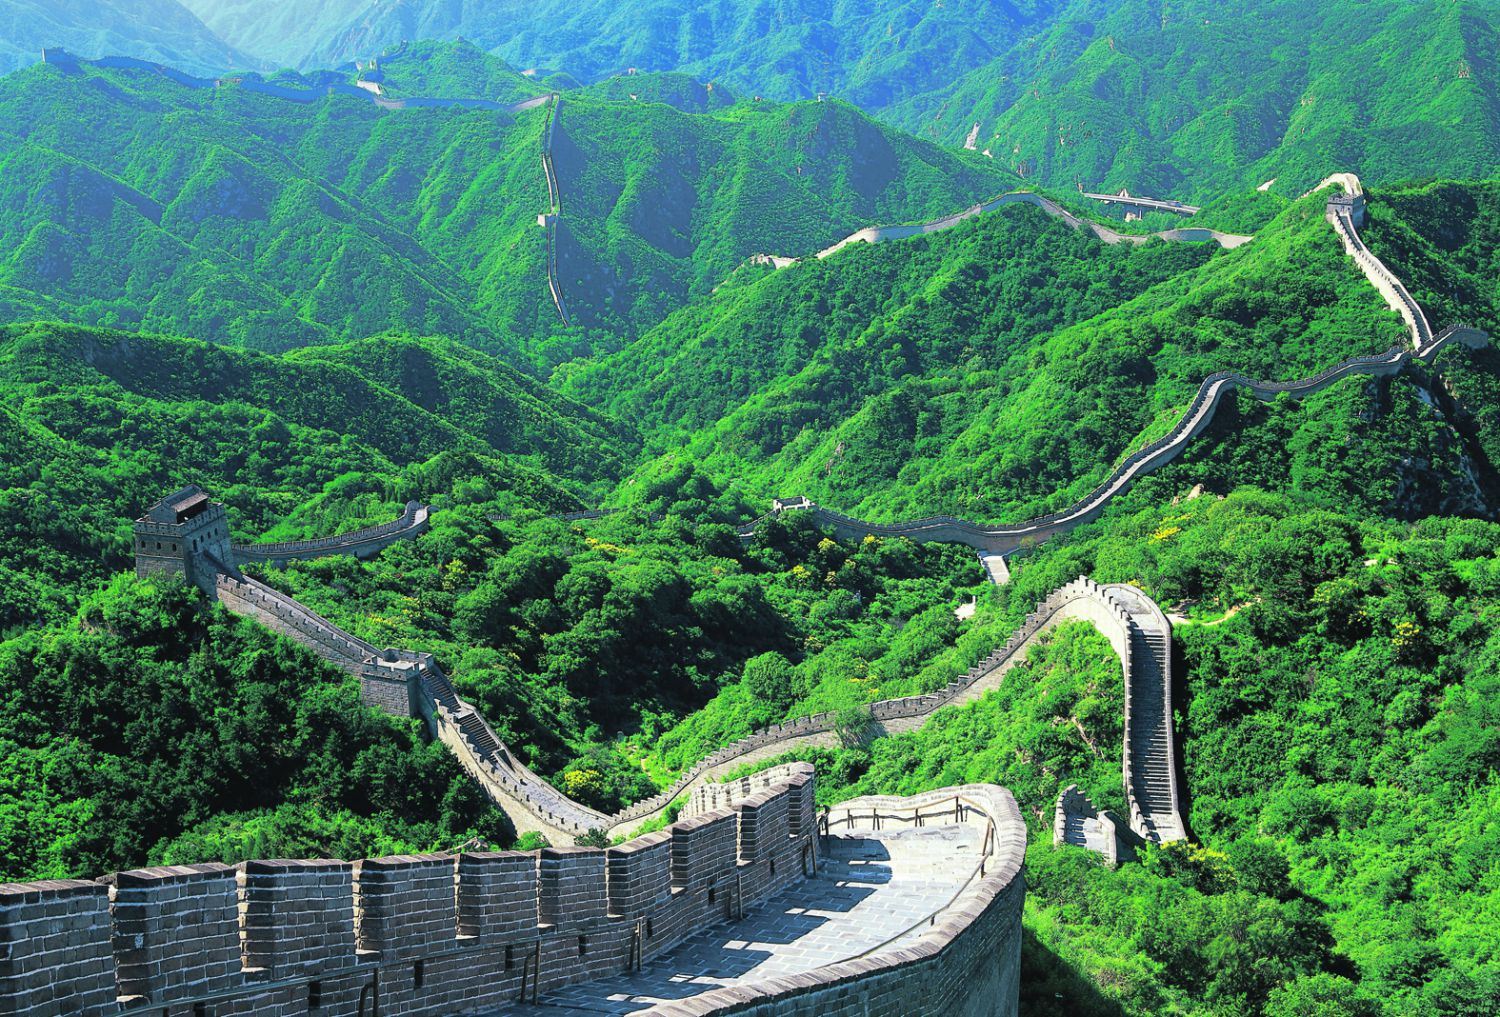 The Great Wall of China on a green mountainous landscape